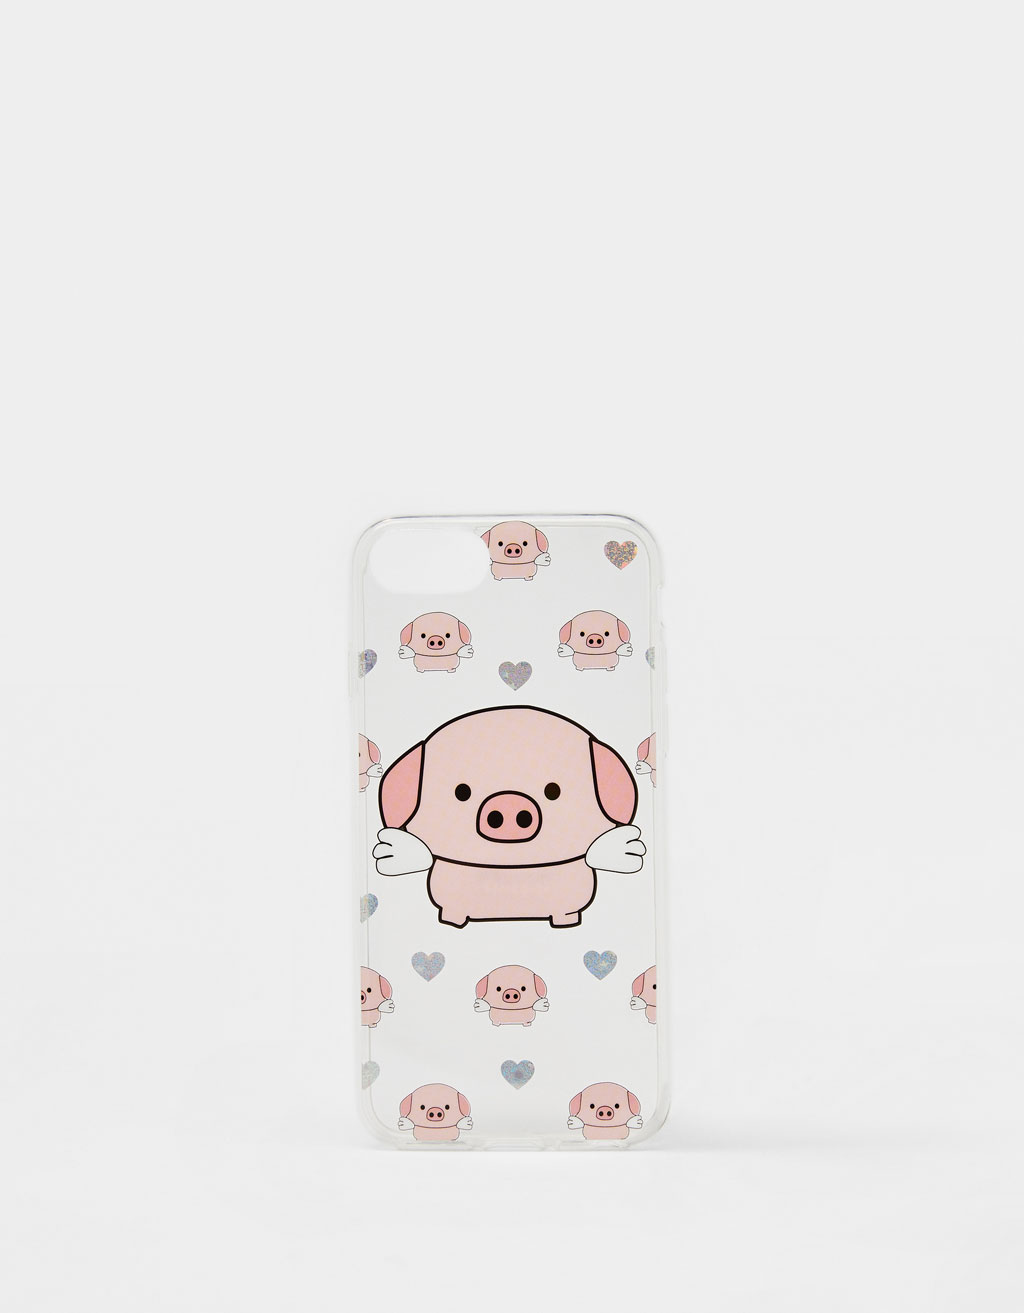 Carcasa Little Pig iPhone iPhone 6 / 6s / 7 / 8